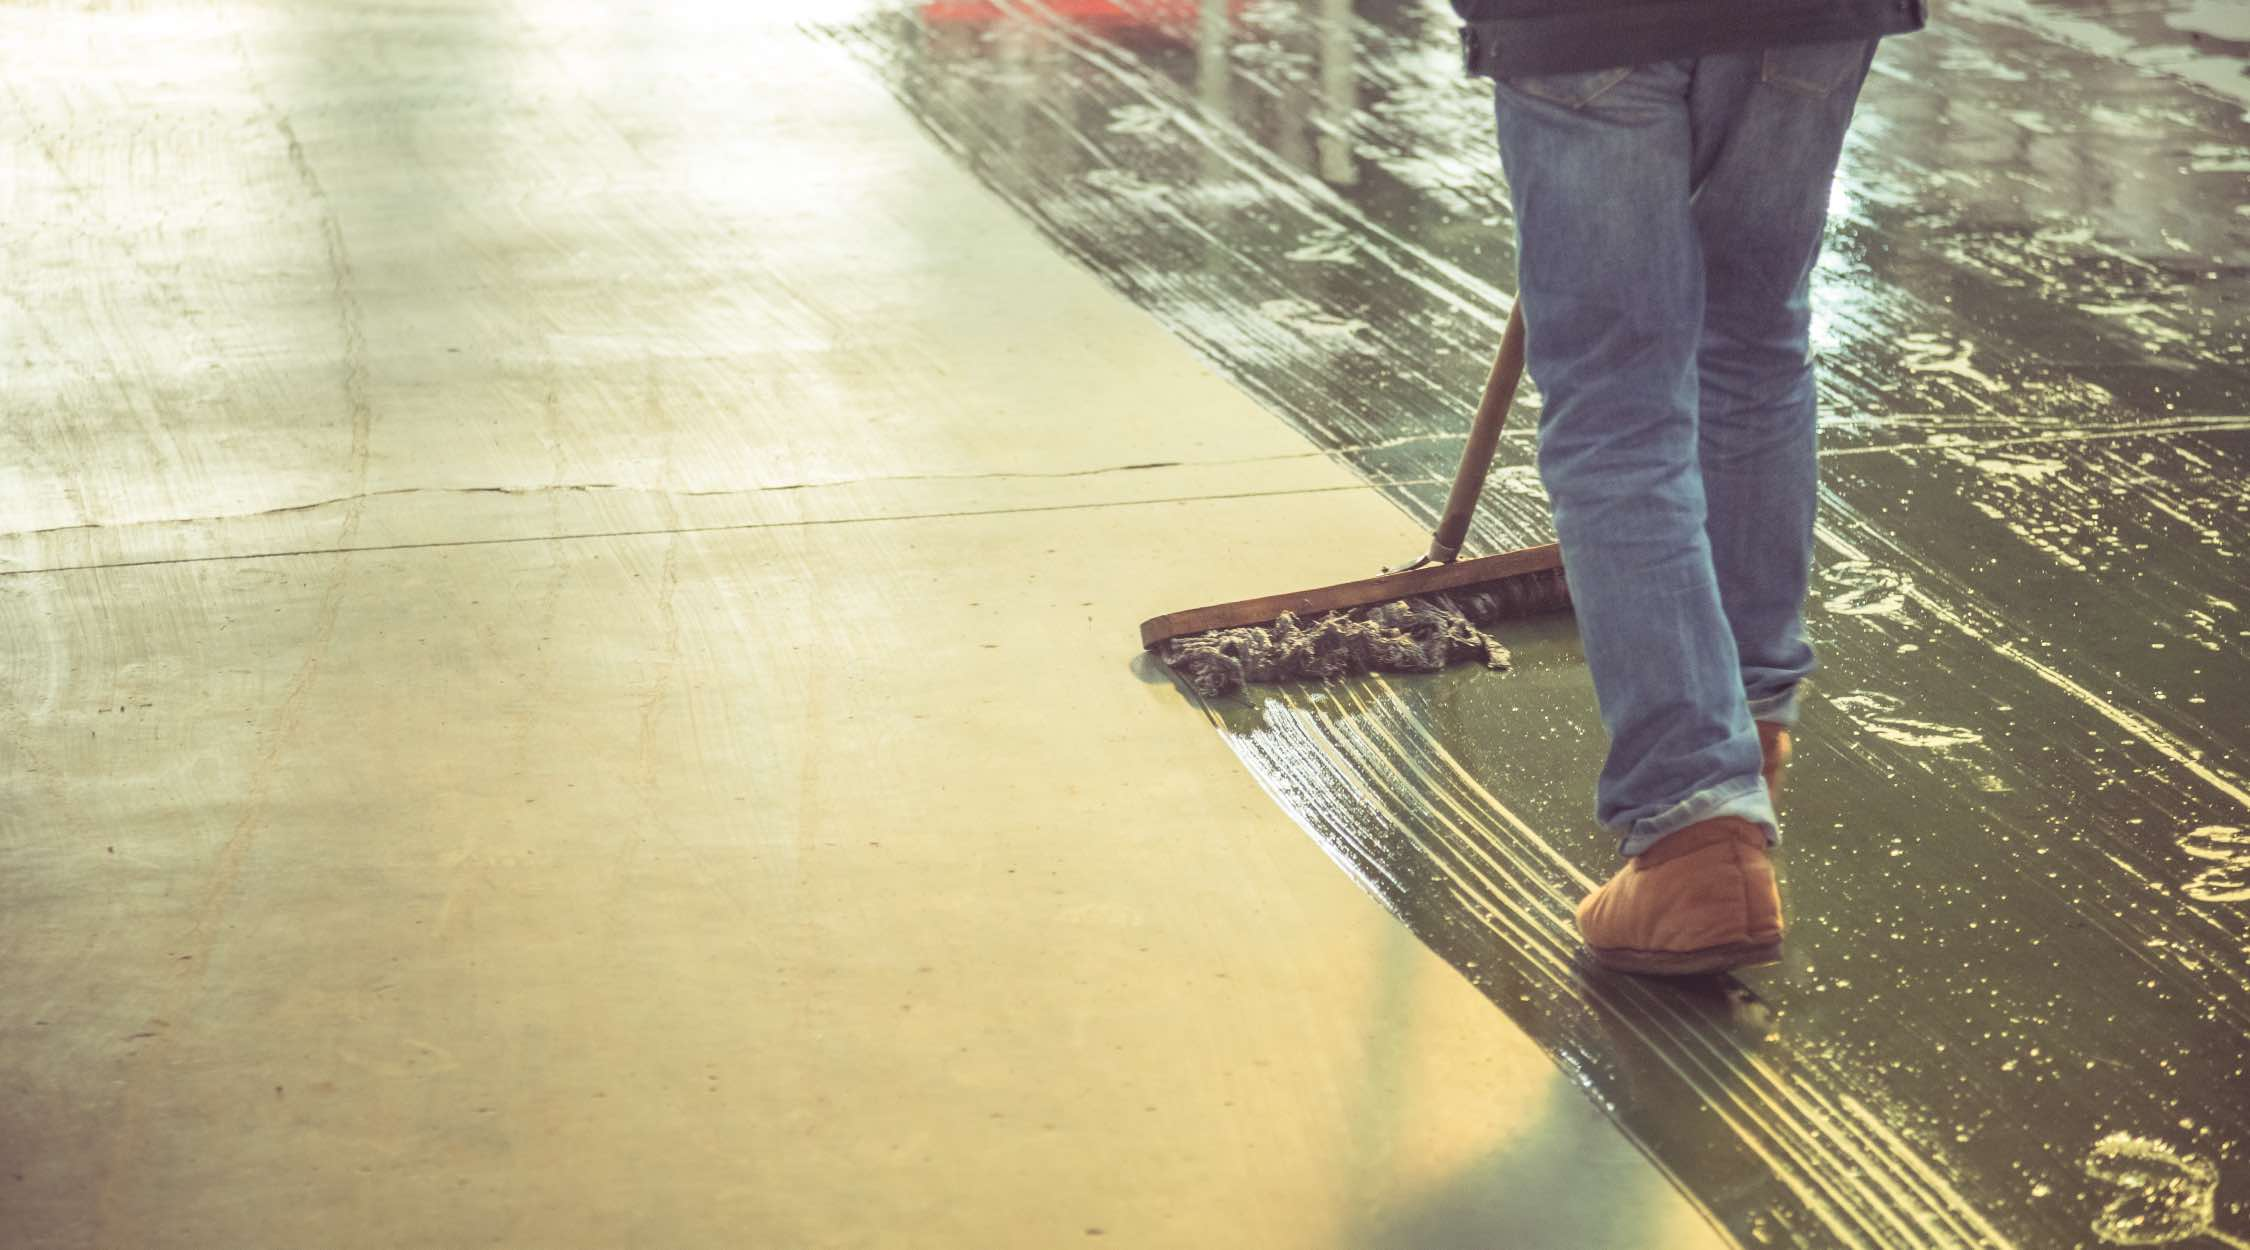 Types of industrial cleaning